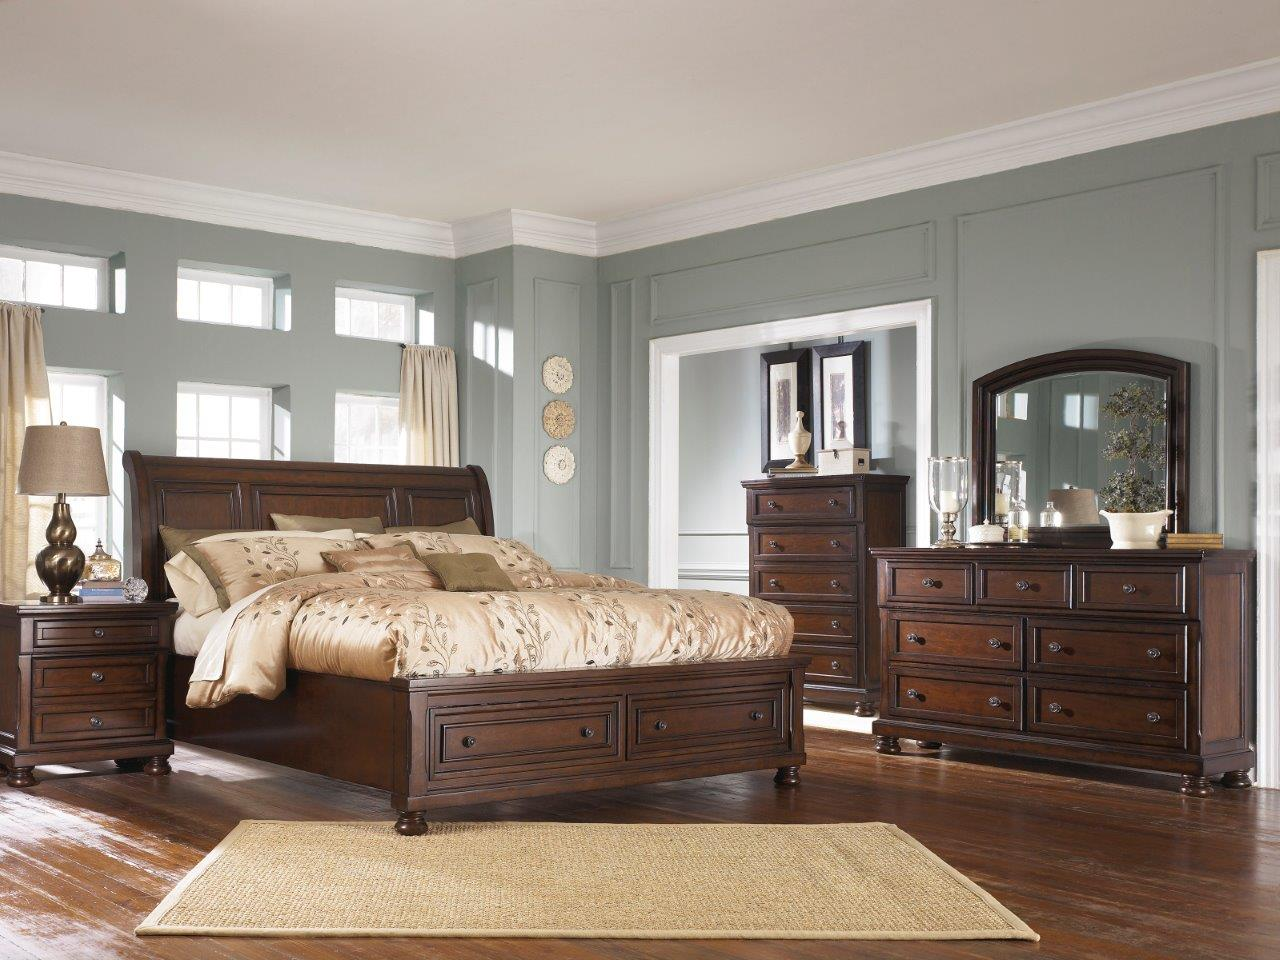 Gibson McDonald Furniture & Mattress image 1